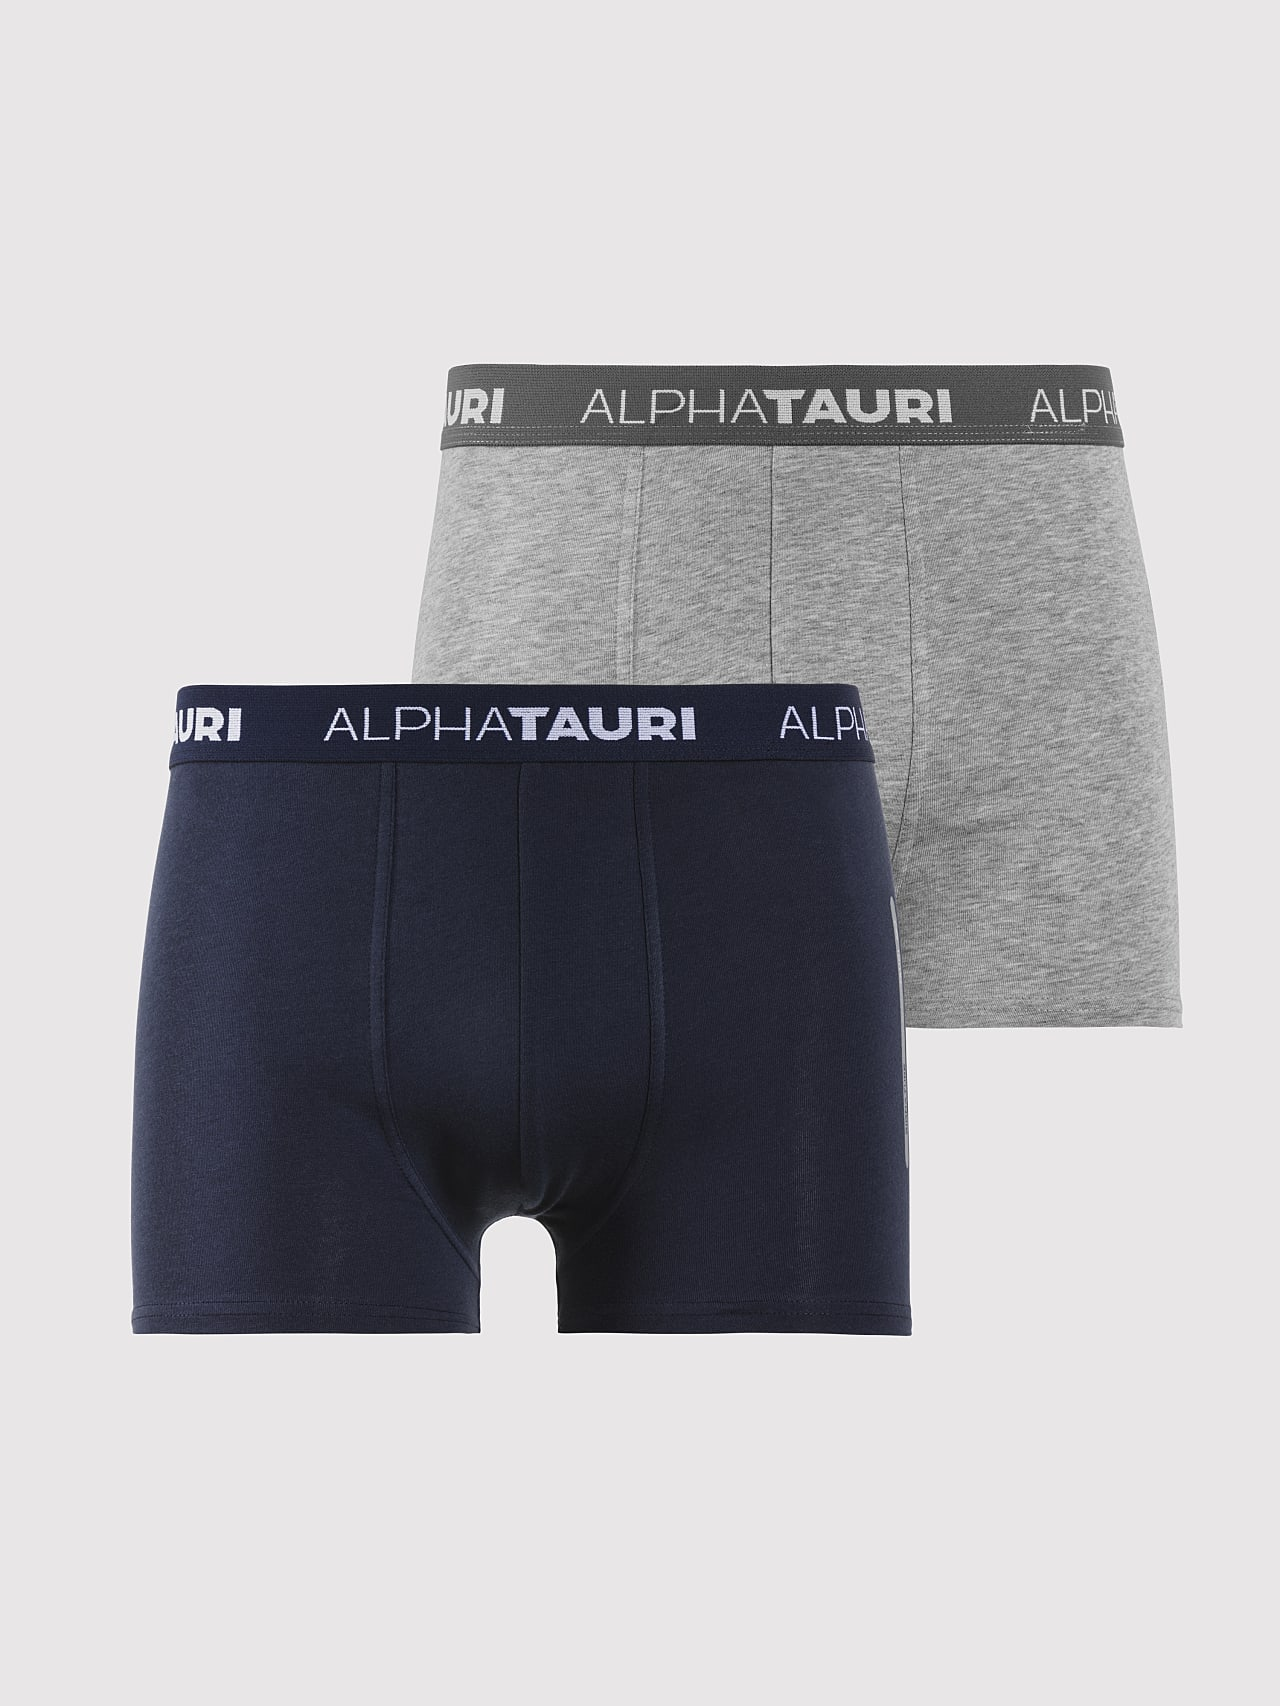 ATOXO V2.Y4.02 Boxer Briefs 2 Pack with SILVERPLUS® multicolour Back Alpha Tauri